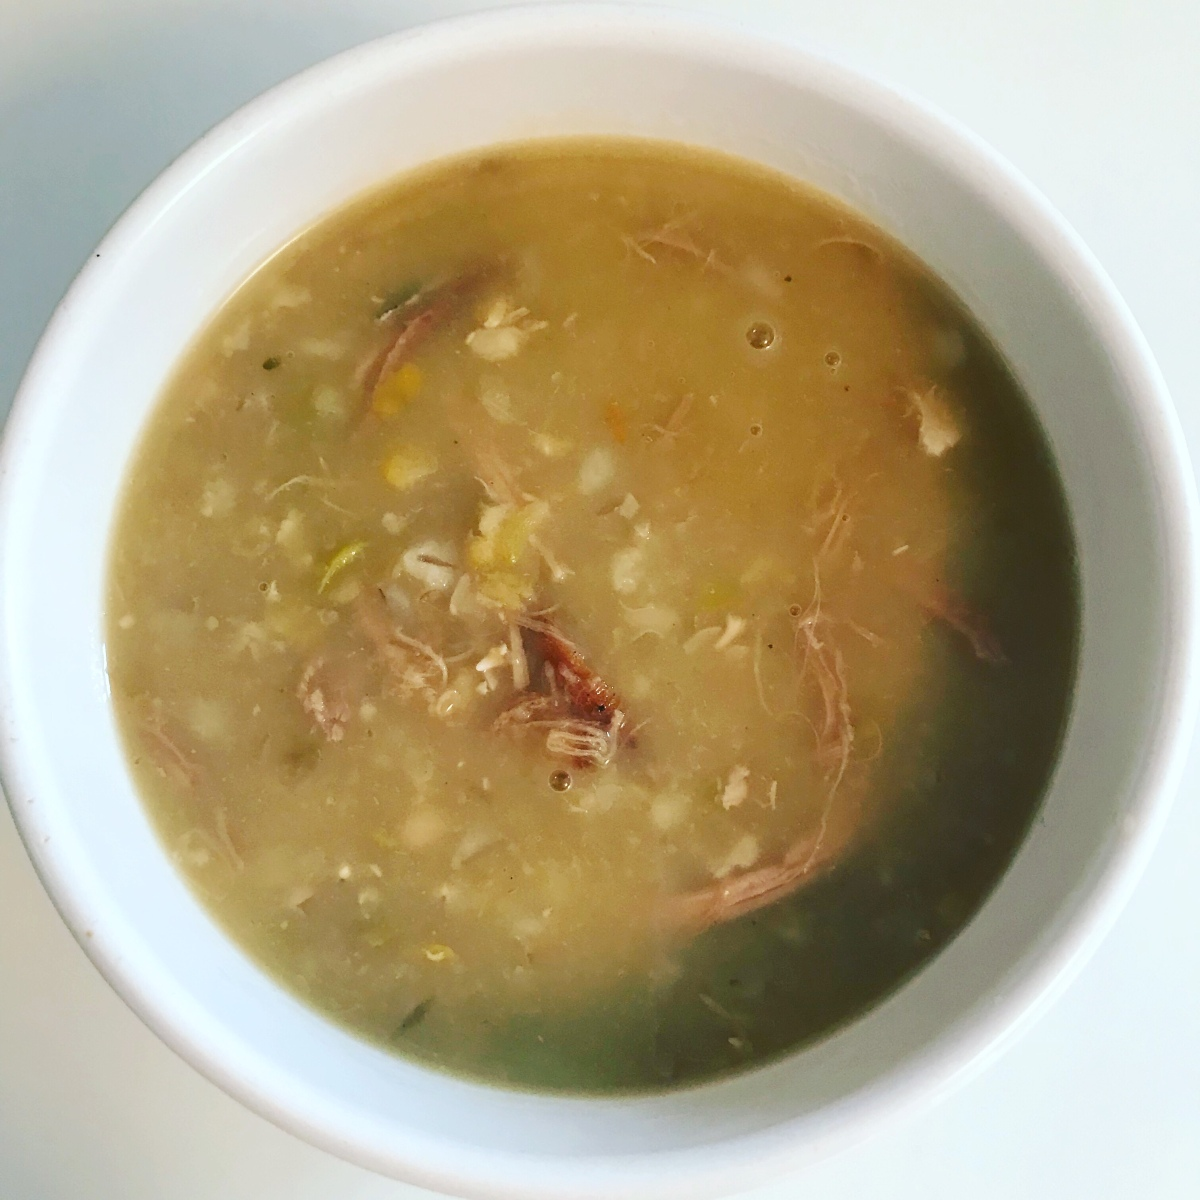 Finnish pea soup